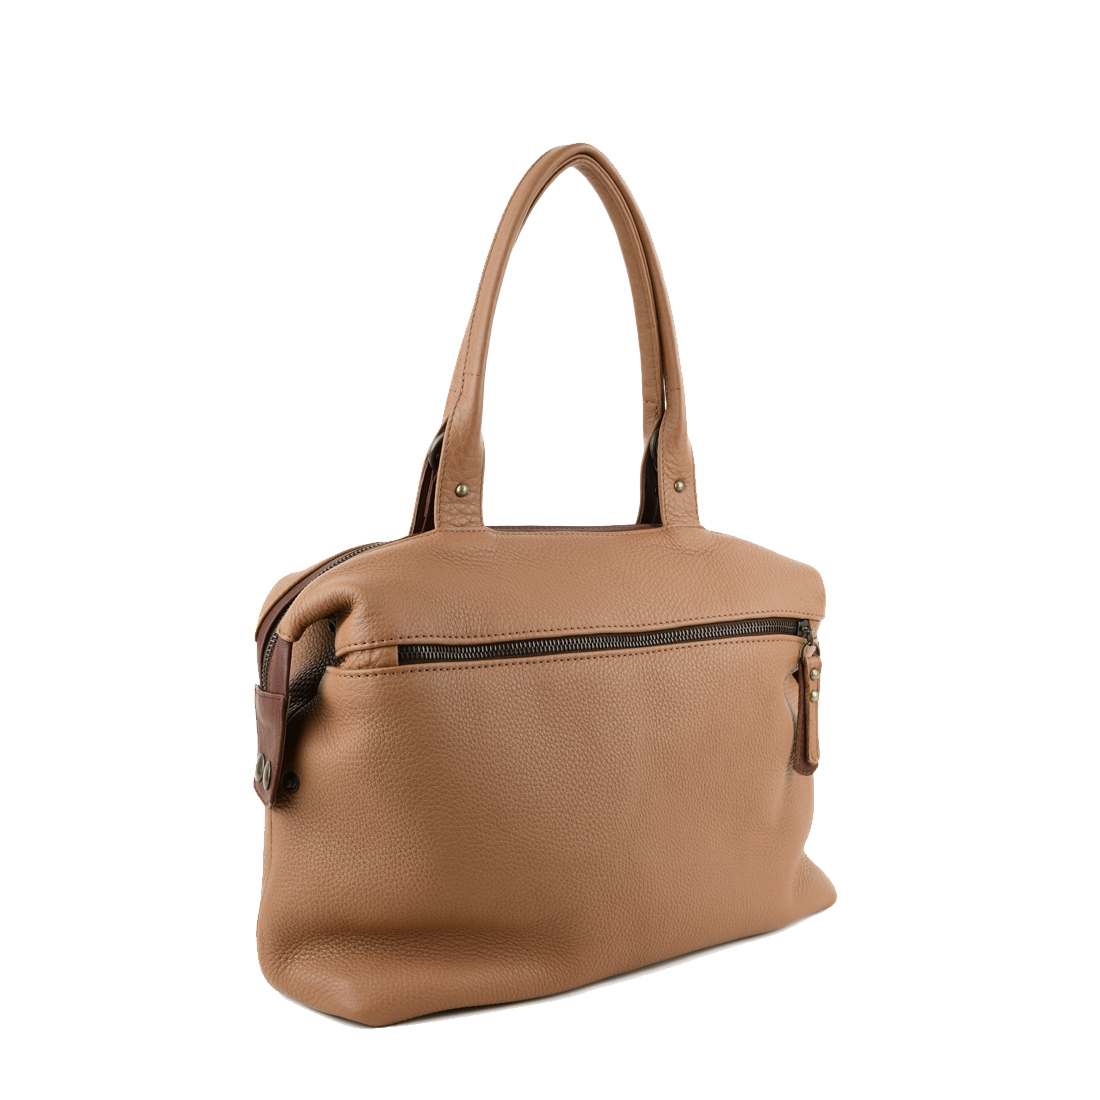 Grace Tan Leather Tote Bag